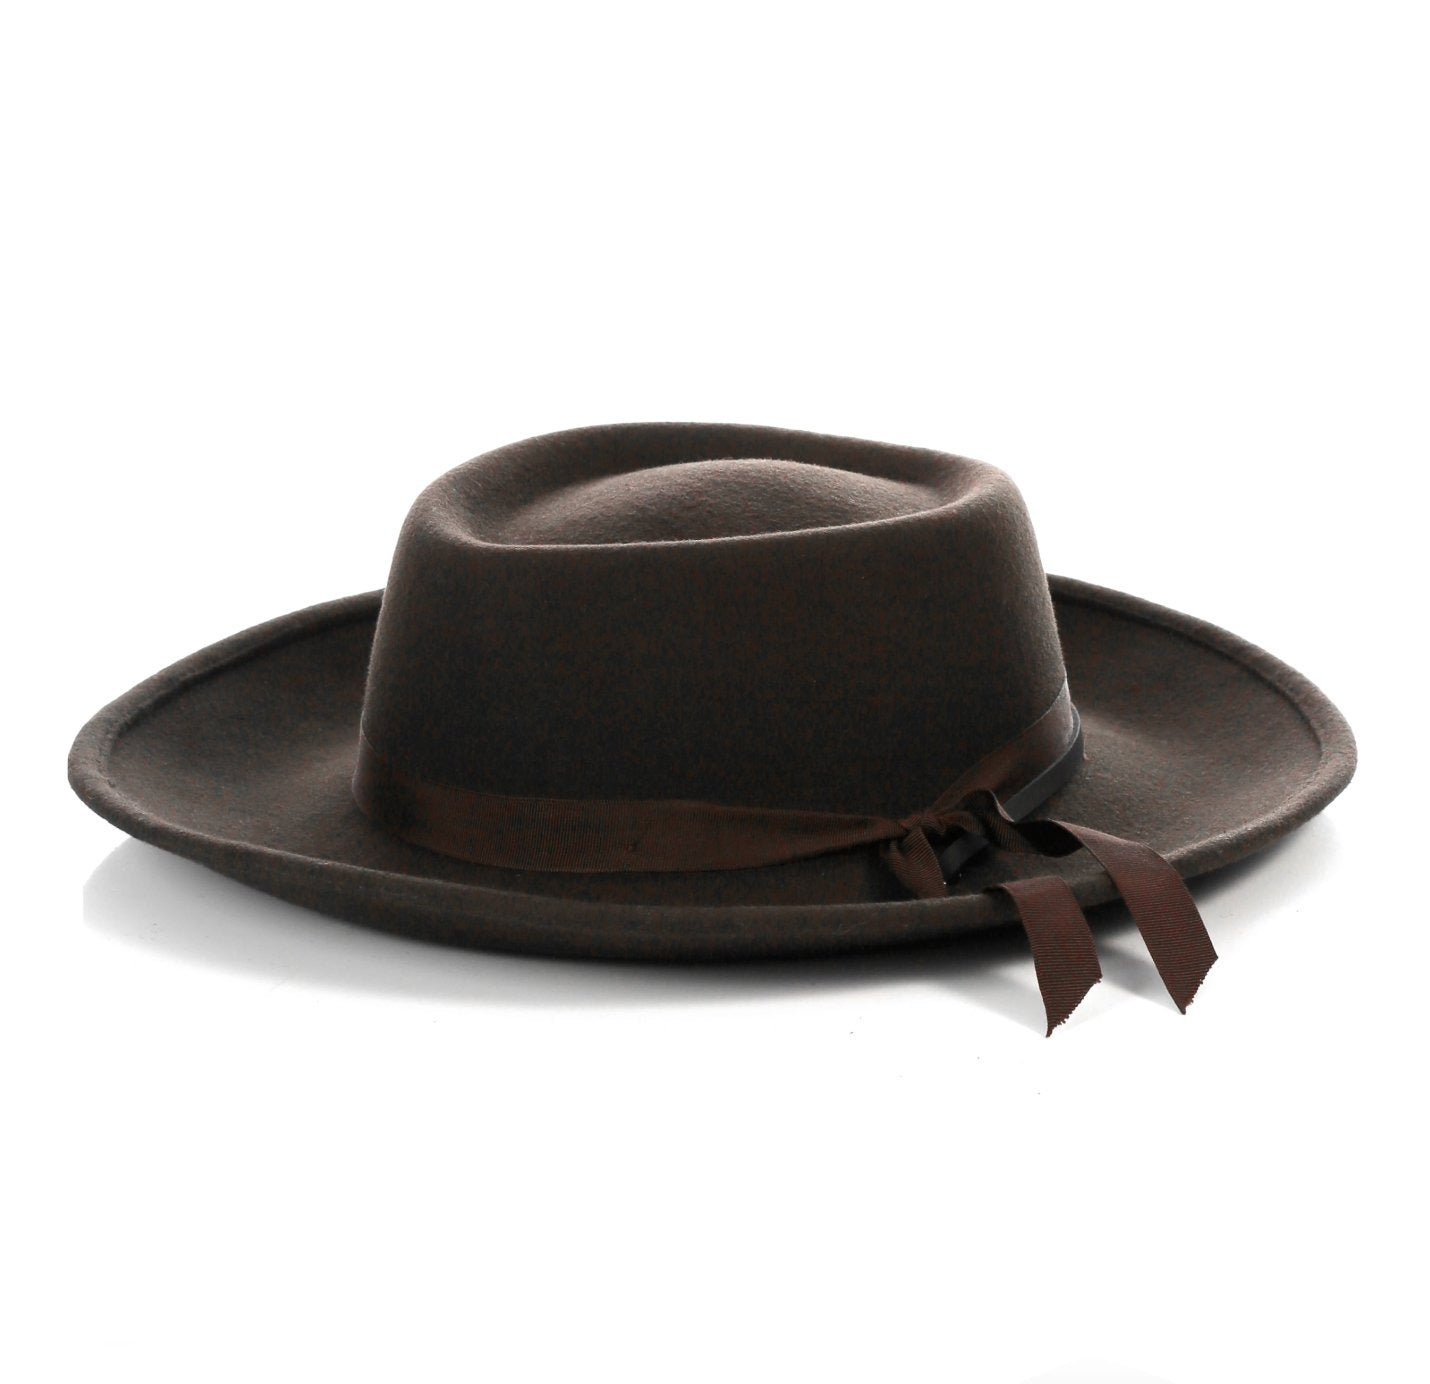 Mens Wide Brim Dress Fedora Hat in Brown